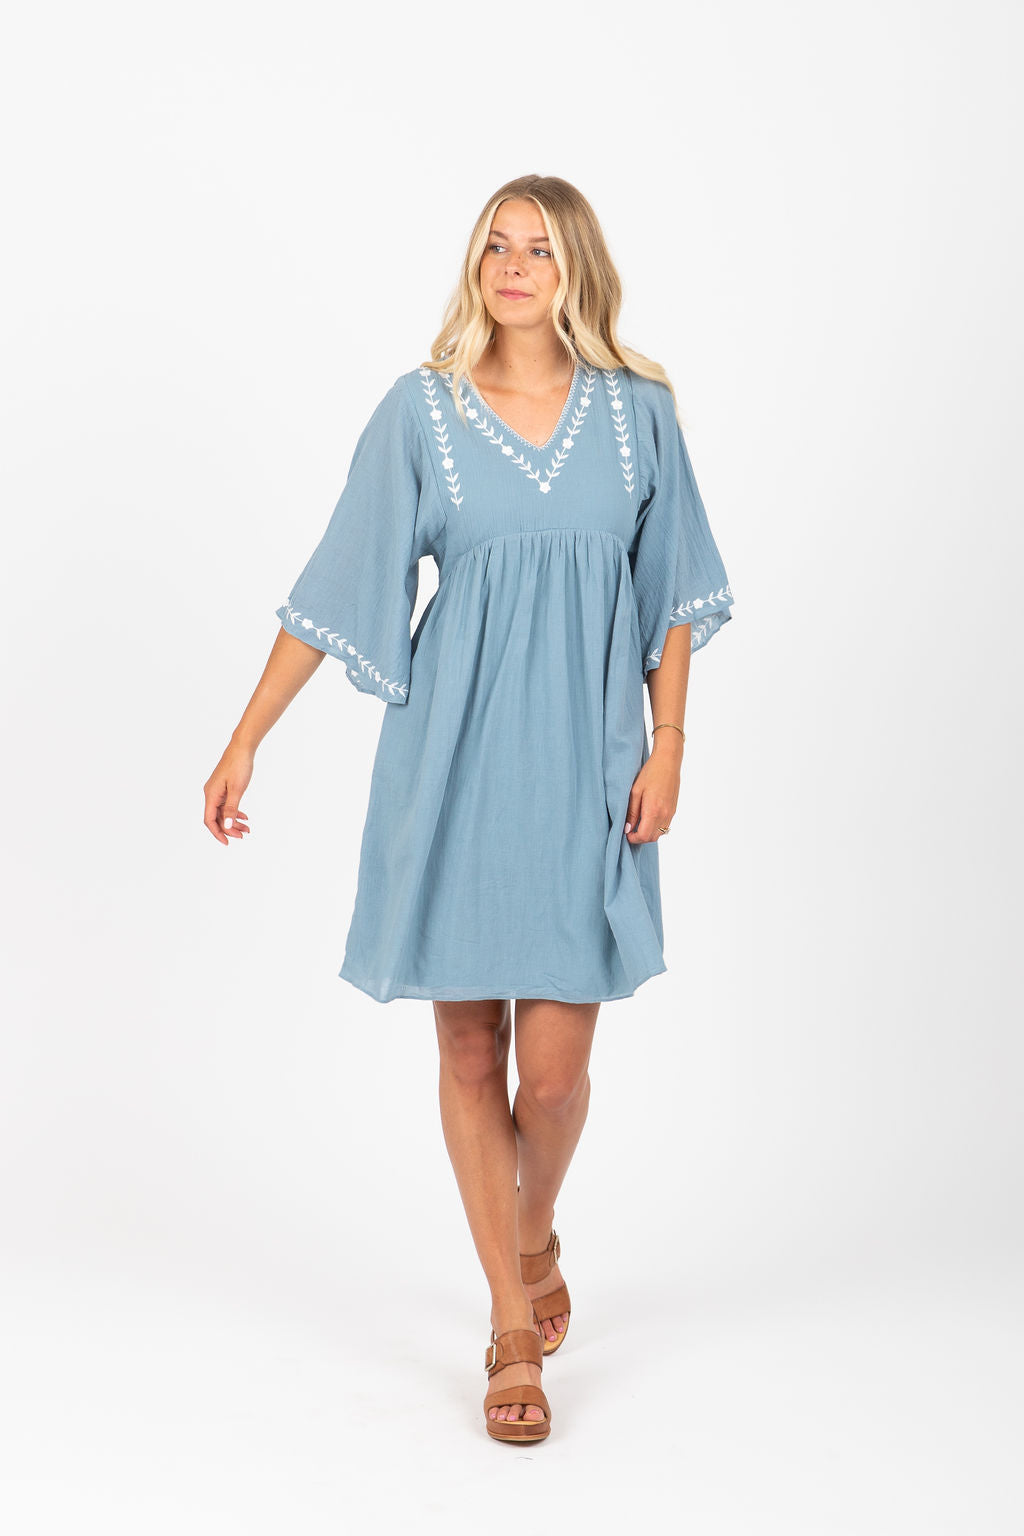 The Yuke Embroidered Dress in Blue